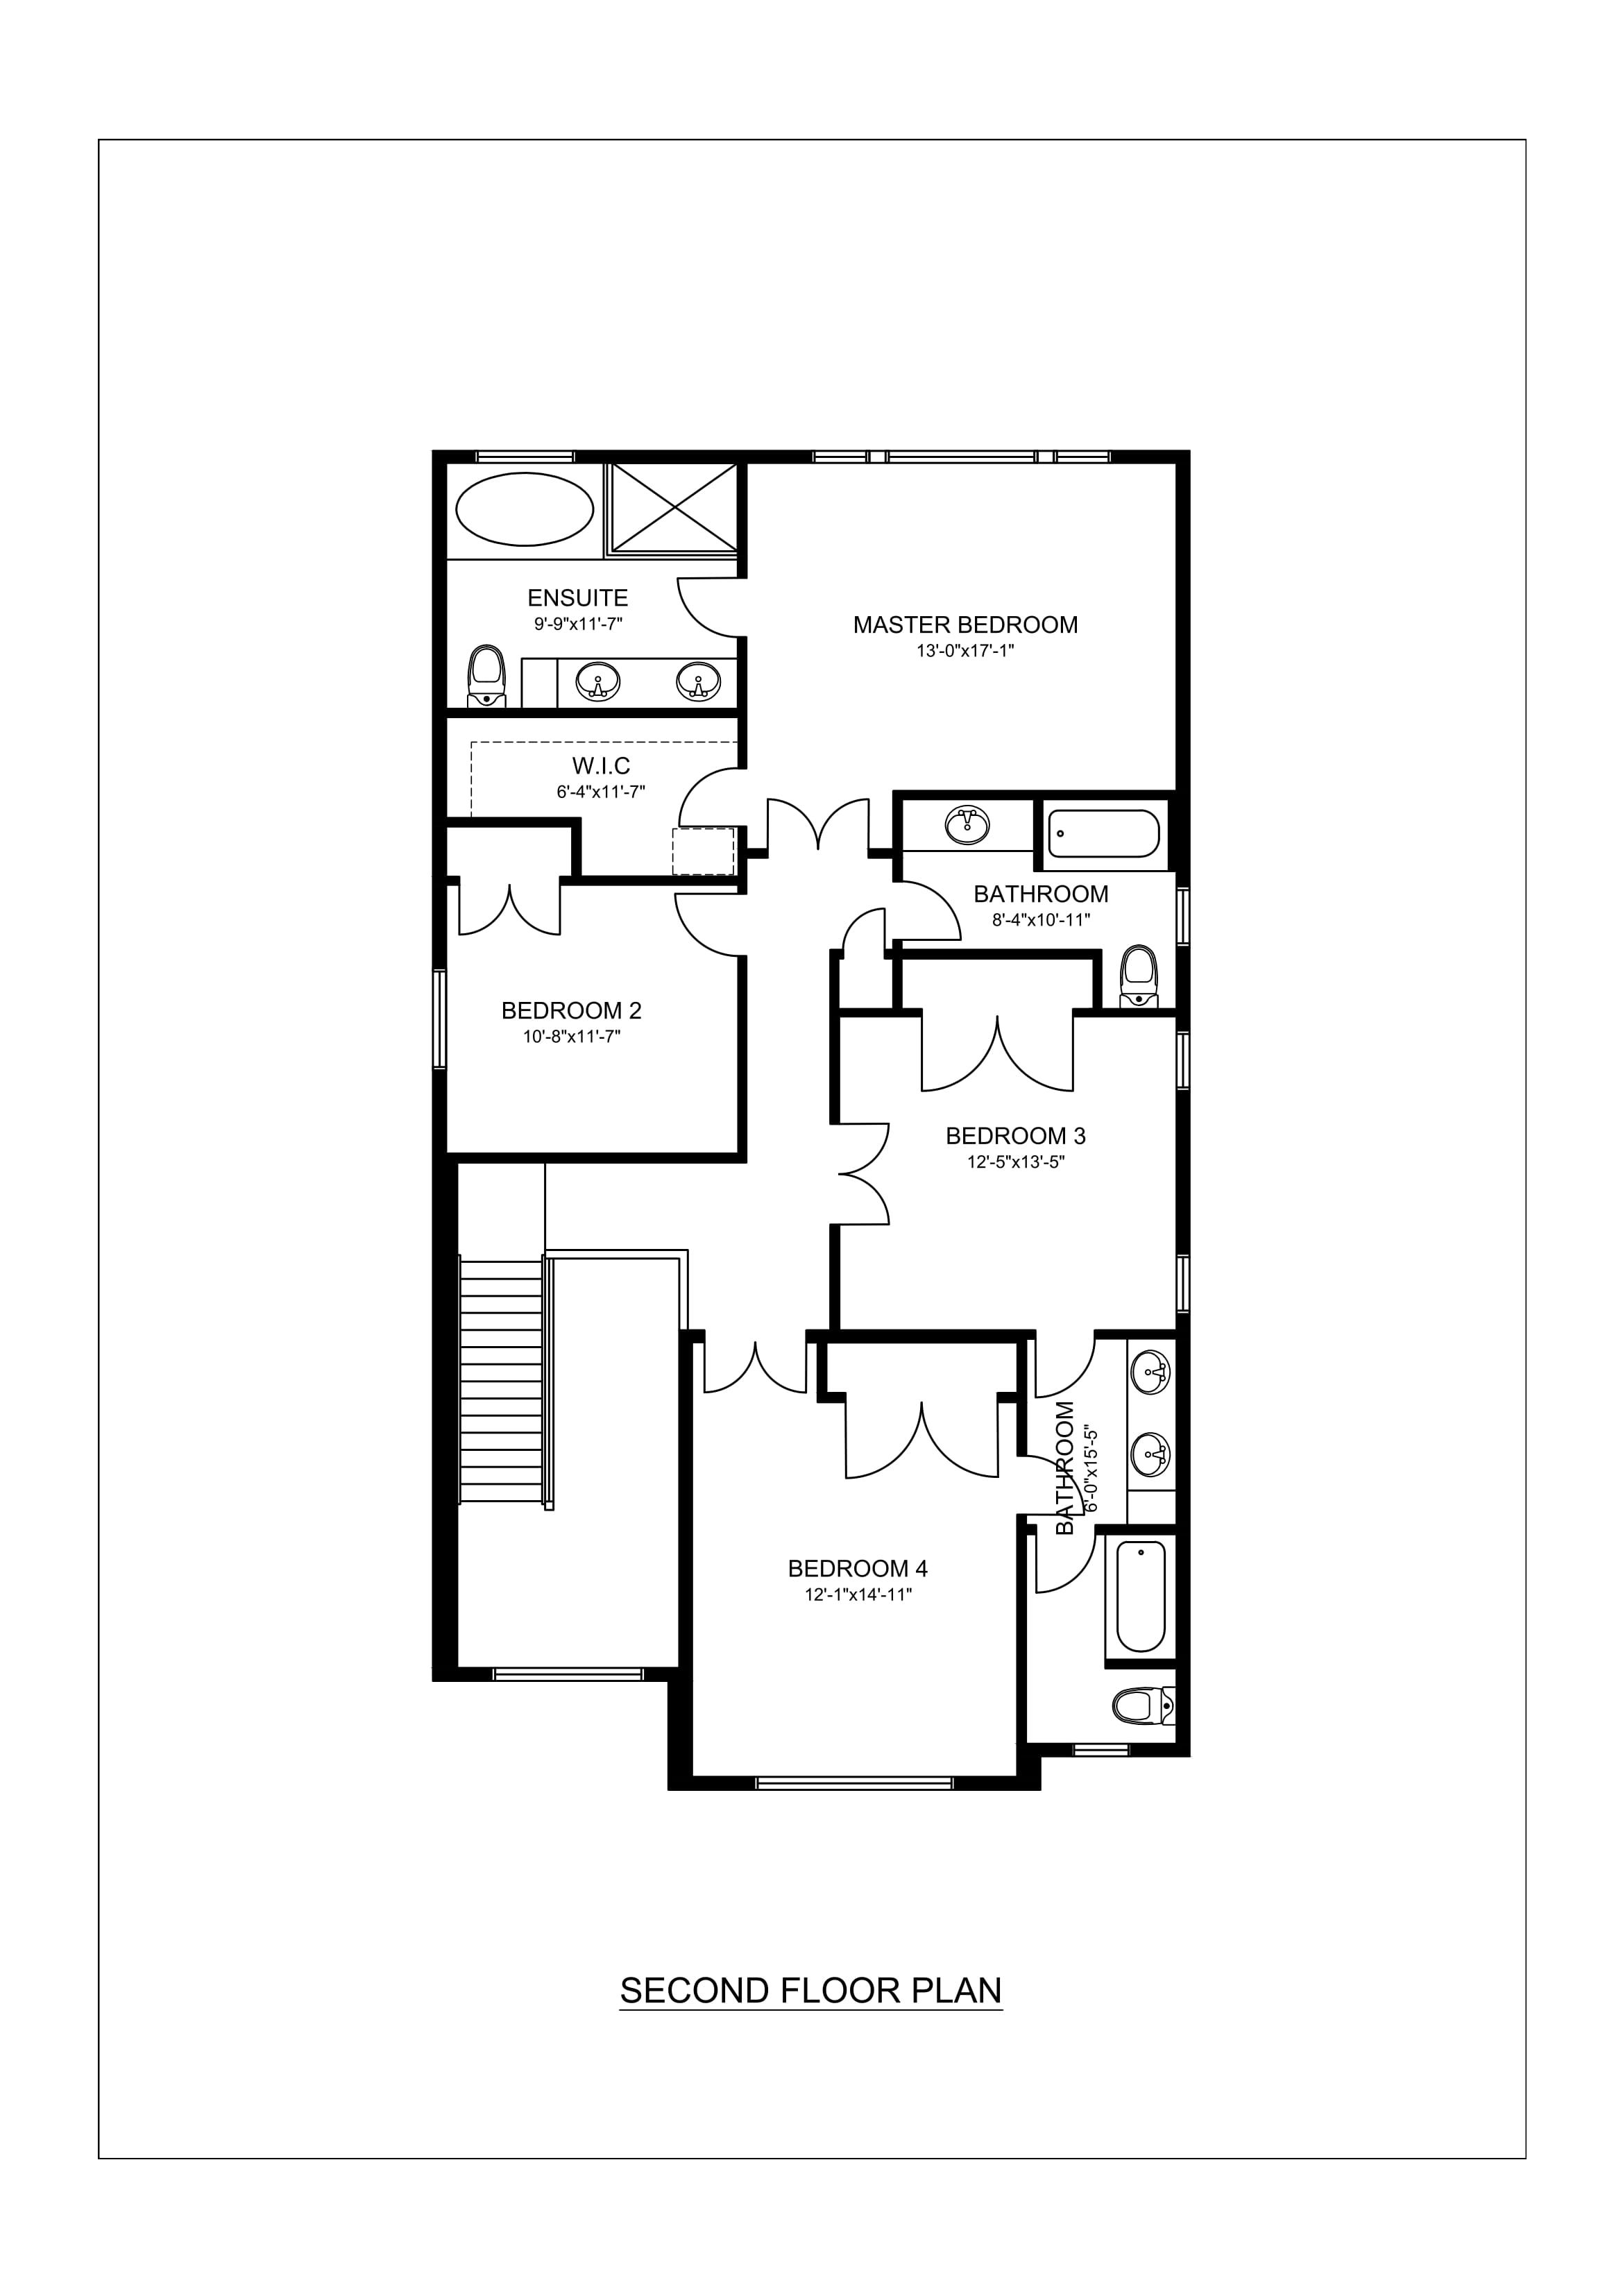 2d Floor Plan Services 2d Color Floor Plan 2d Floor Plan Creator 2d Floor Plan Design 2d Floor Floor Plan Design Home Design Floor Plans House Floor Plans